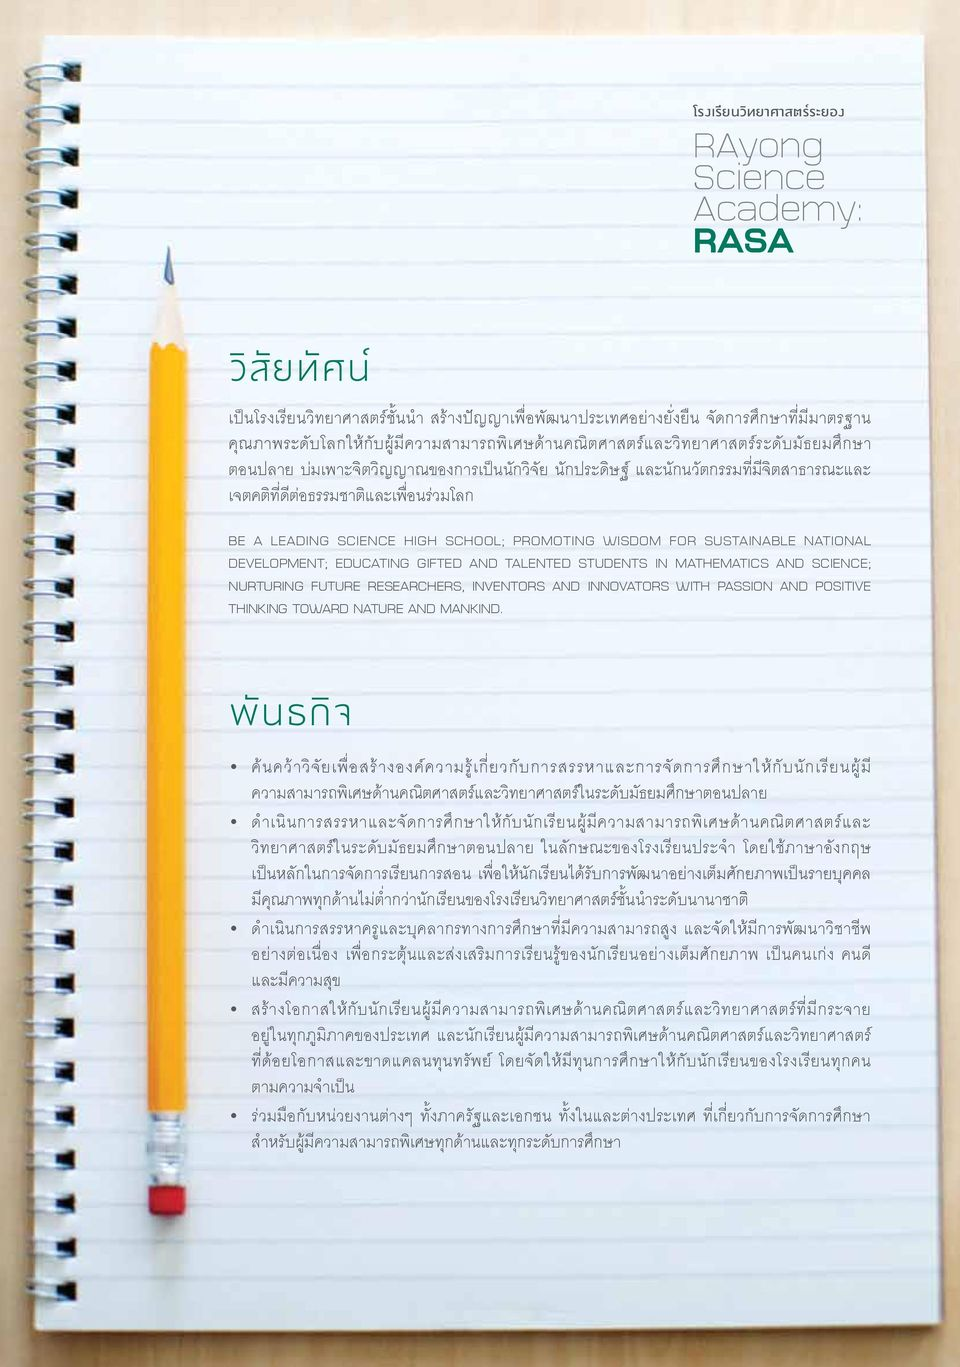 Promoting wisdom for sustainable national development; Educating gifted and talented students in mathematics and science; Nurturing future researchers, inventors and innovators with passion and